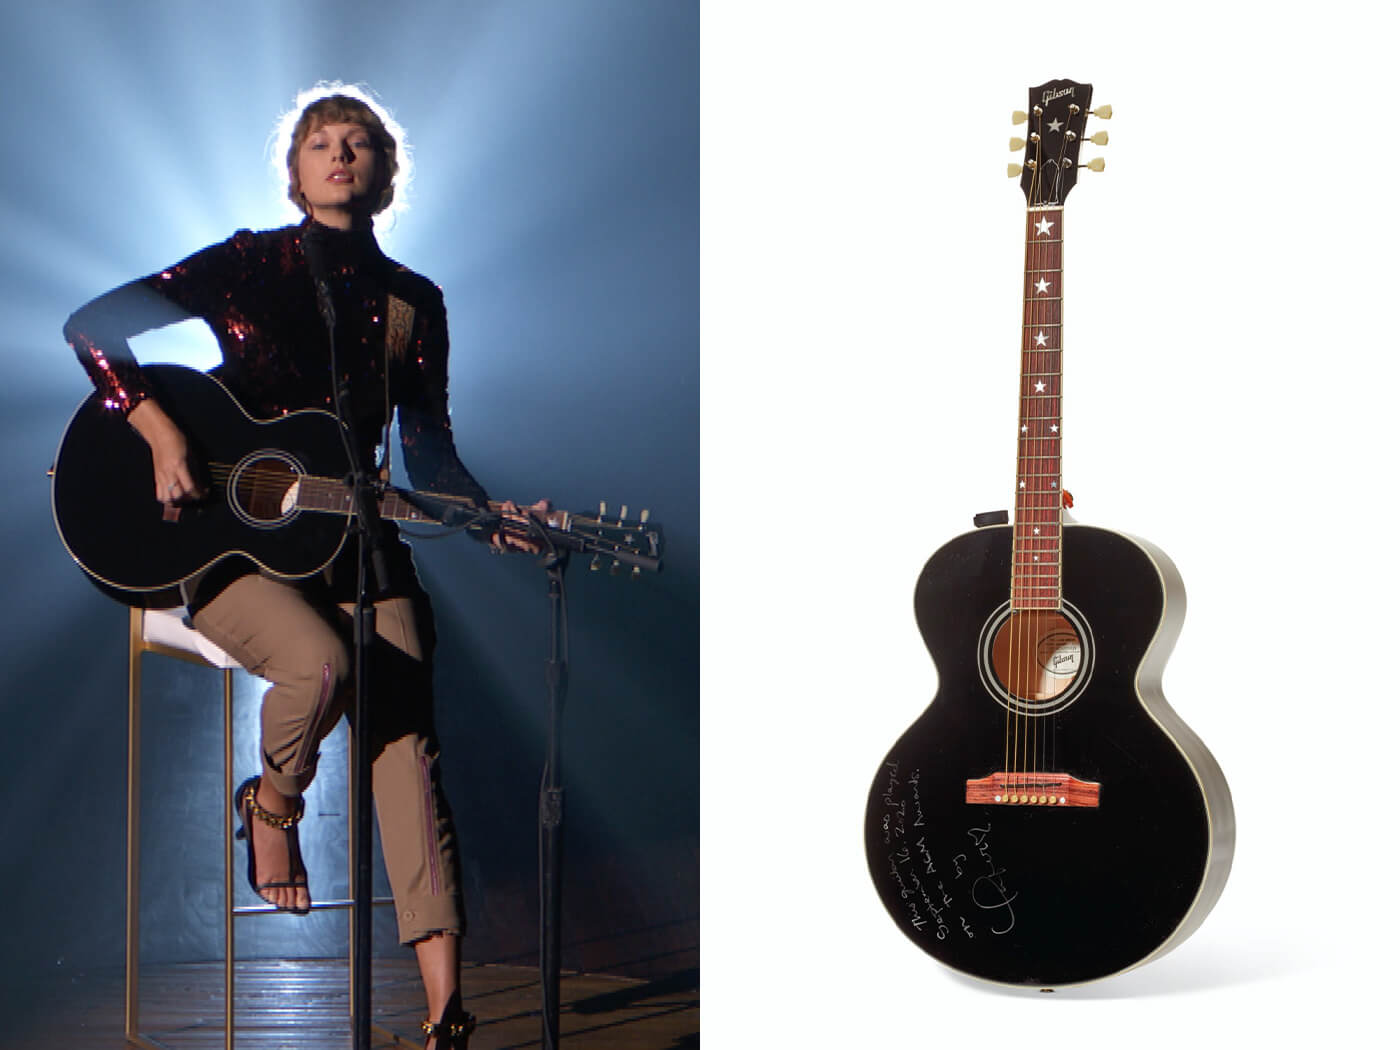 Taylor Swift S Gibson J 180 Acoustic Keith Urban S Hi9 Electric Will Be Auctioned For Covid 19 Relief Guitar Com All Things Guitar